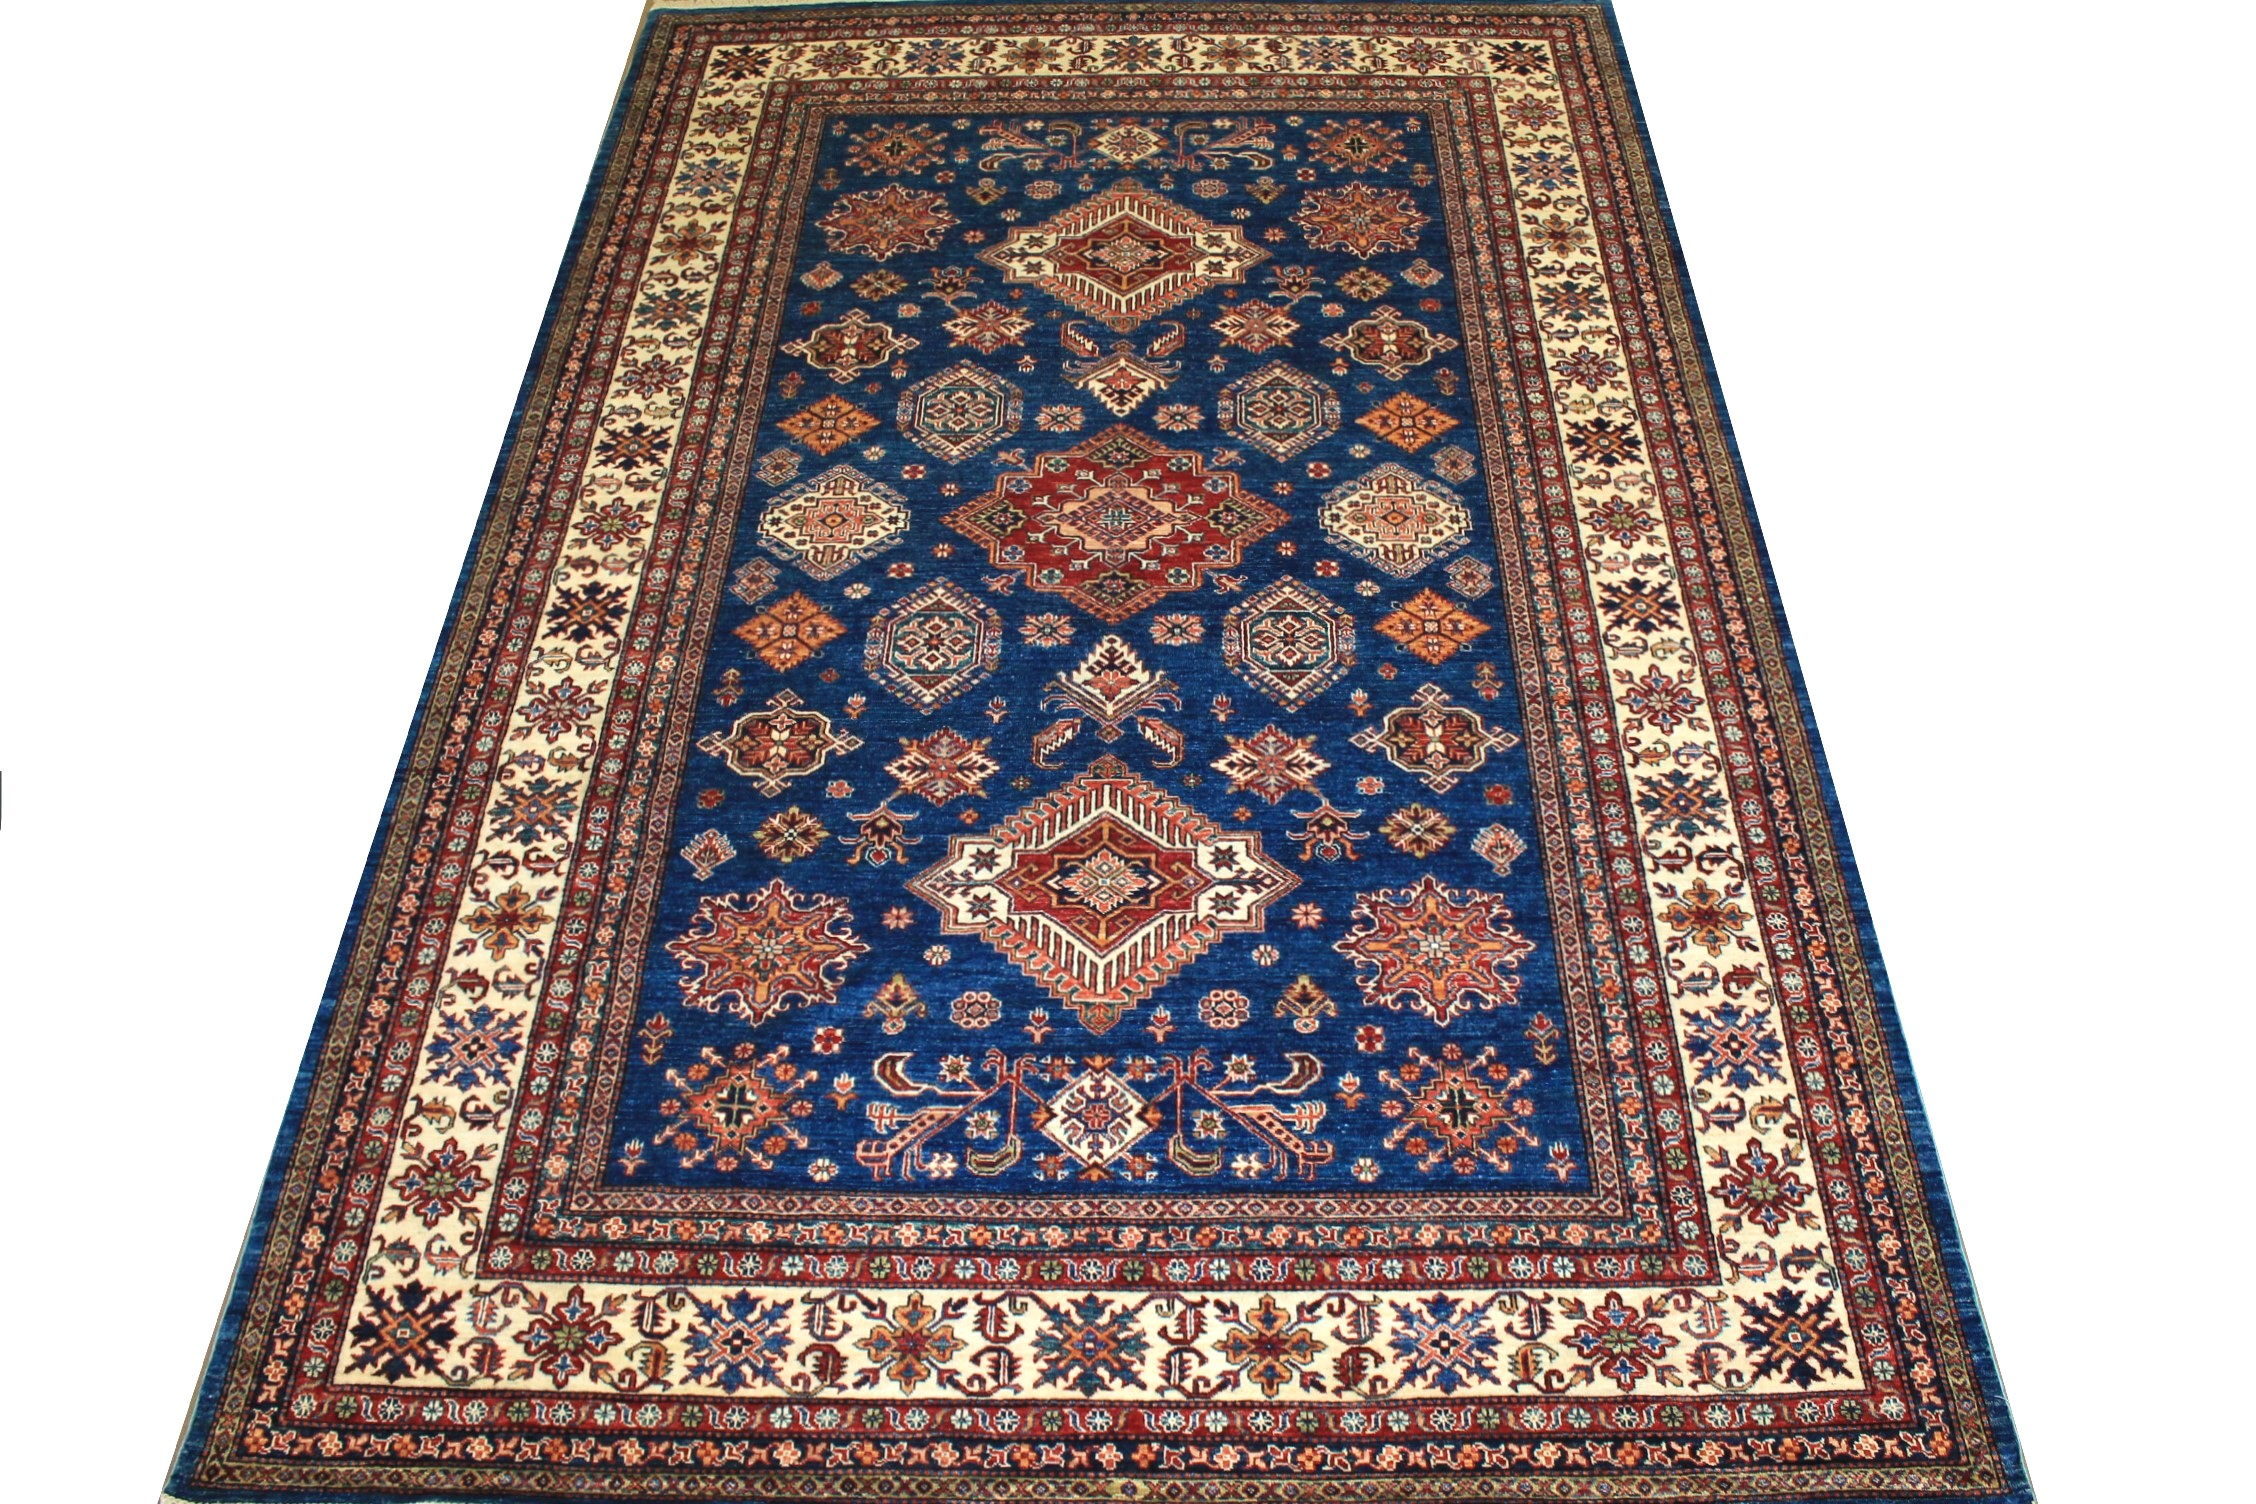 9x12 Kazak Hand Knotted Wool Area Rug - MR024735